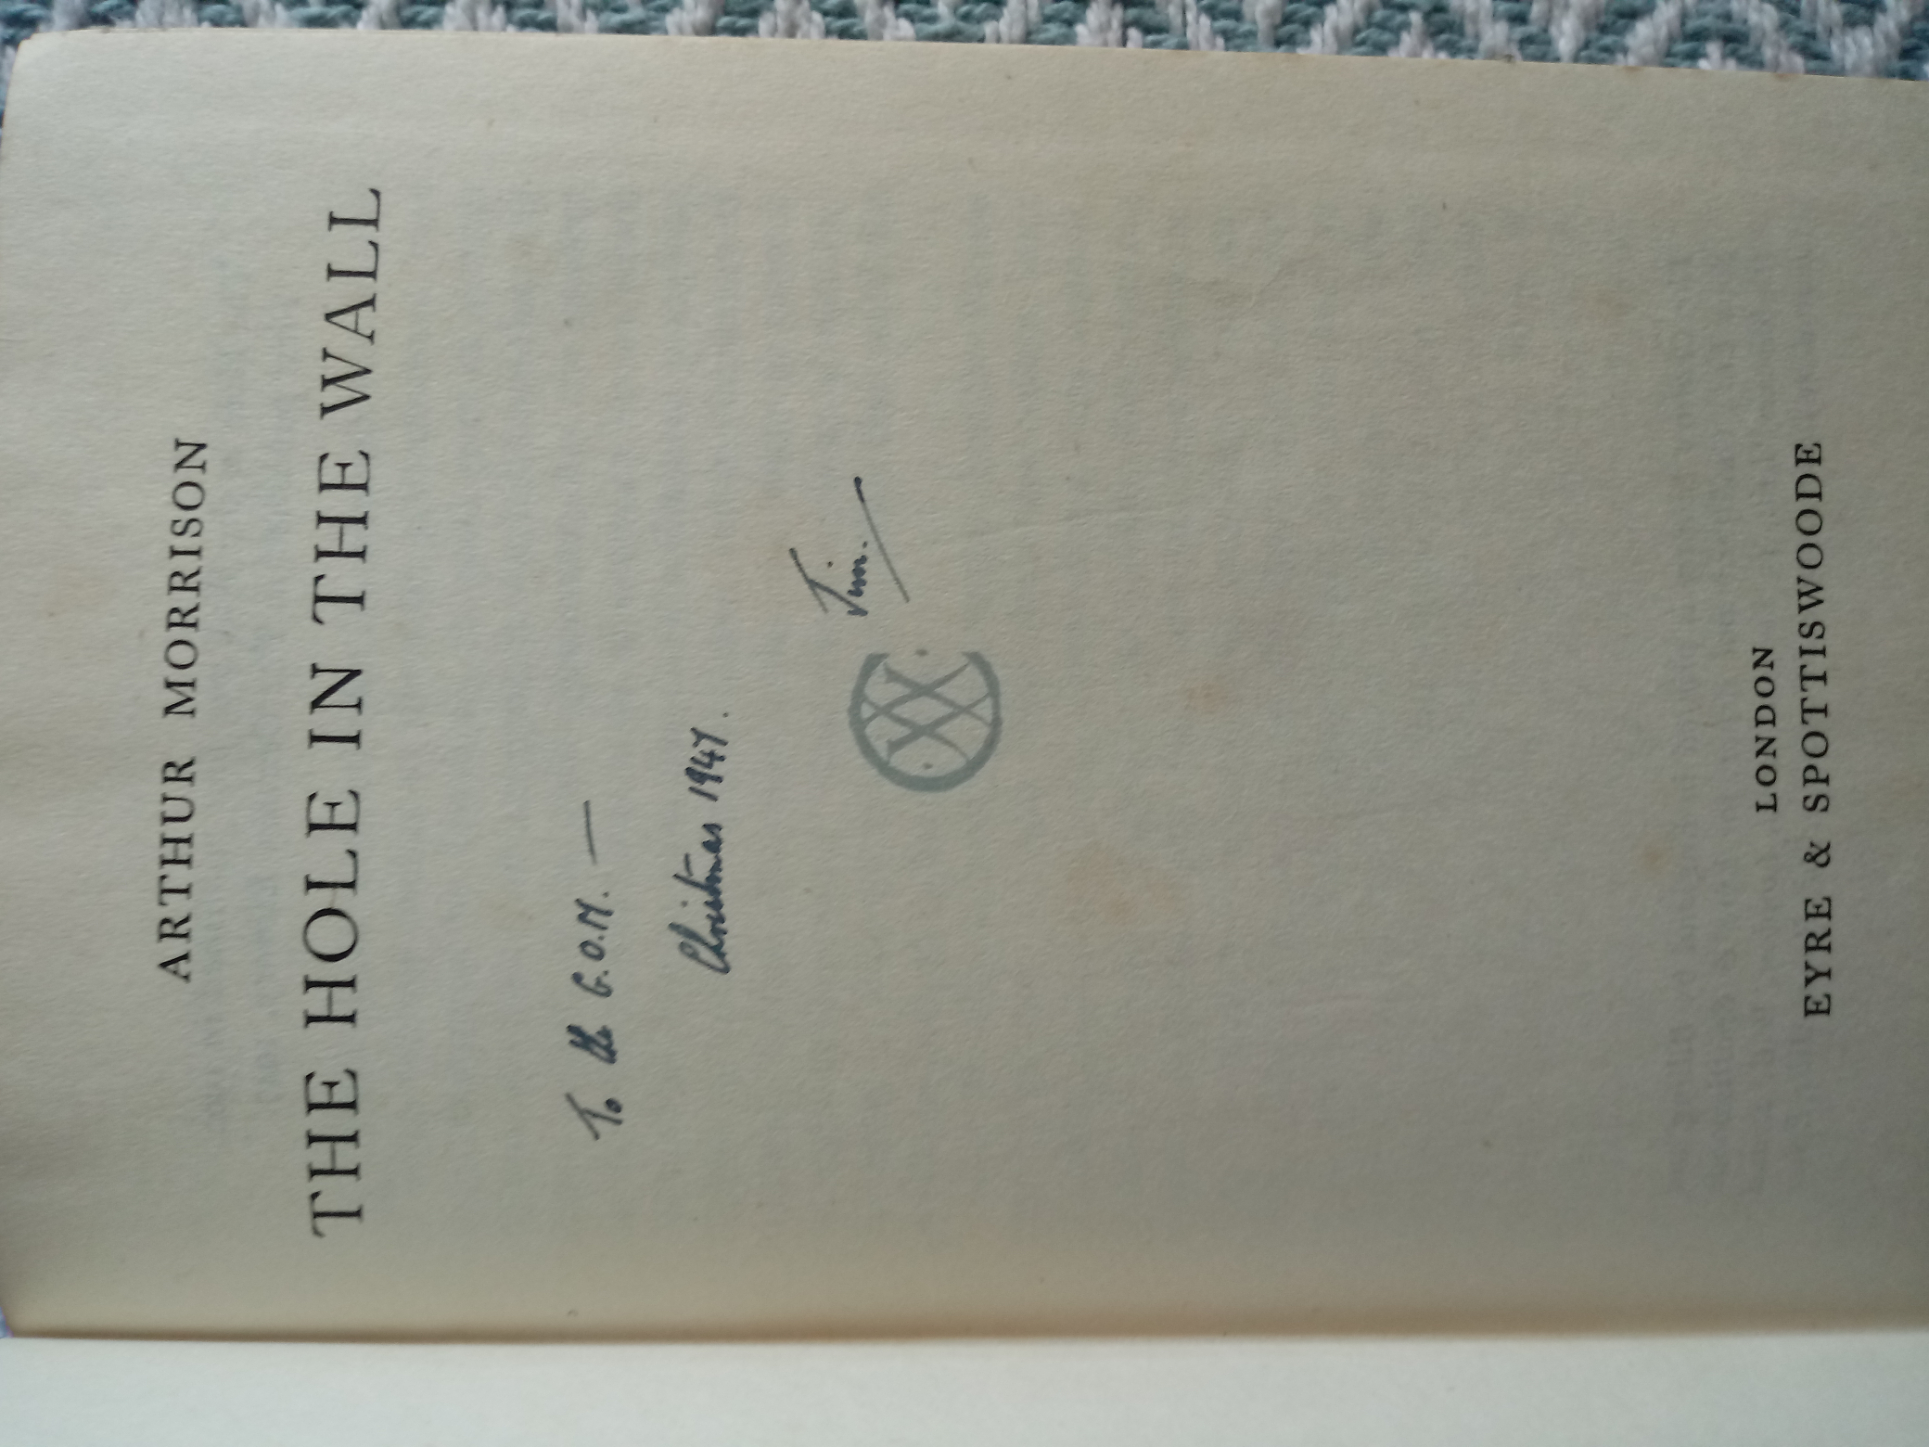 The Hole In The Wall by Arthur Morrison hardback book 223 pages inscribed on title page Published - Image 3 of 4